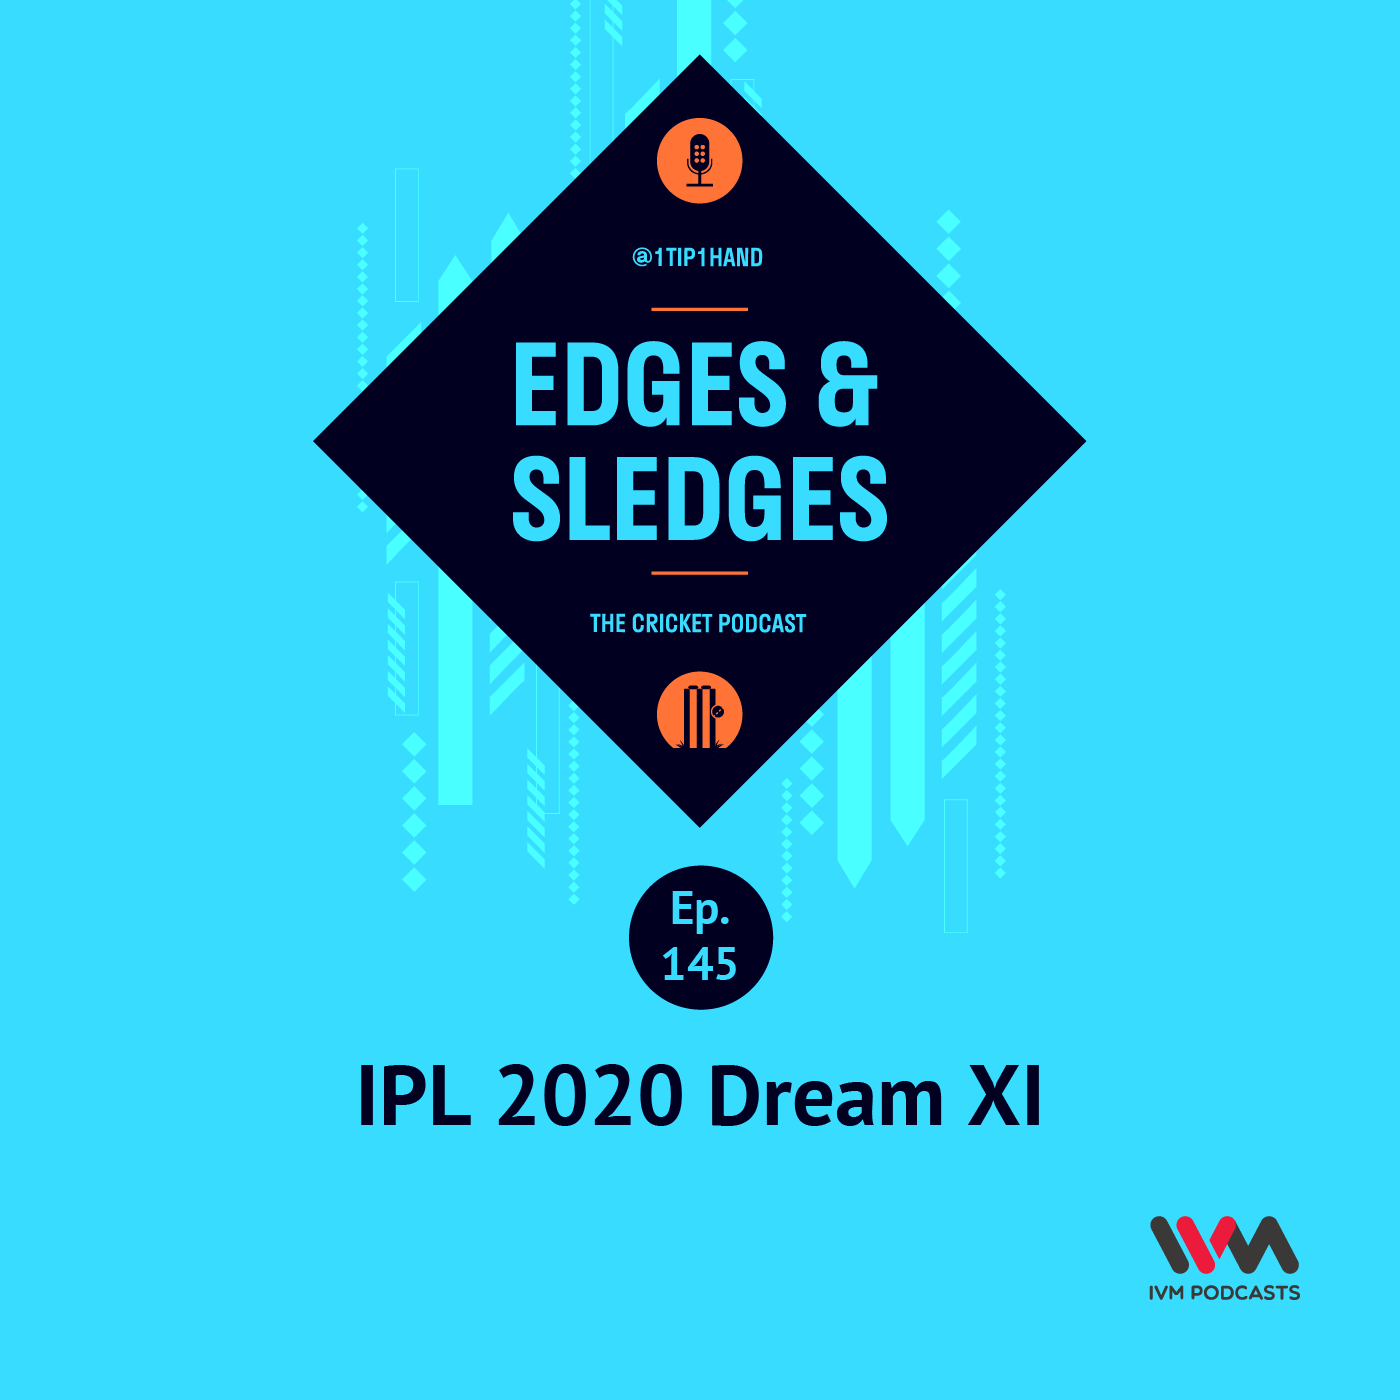 Ep. 145: IPL 2020 Dream XI